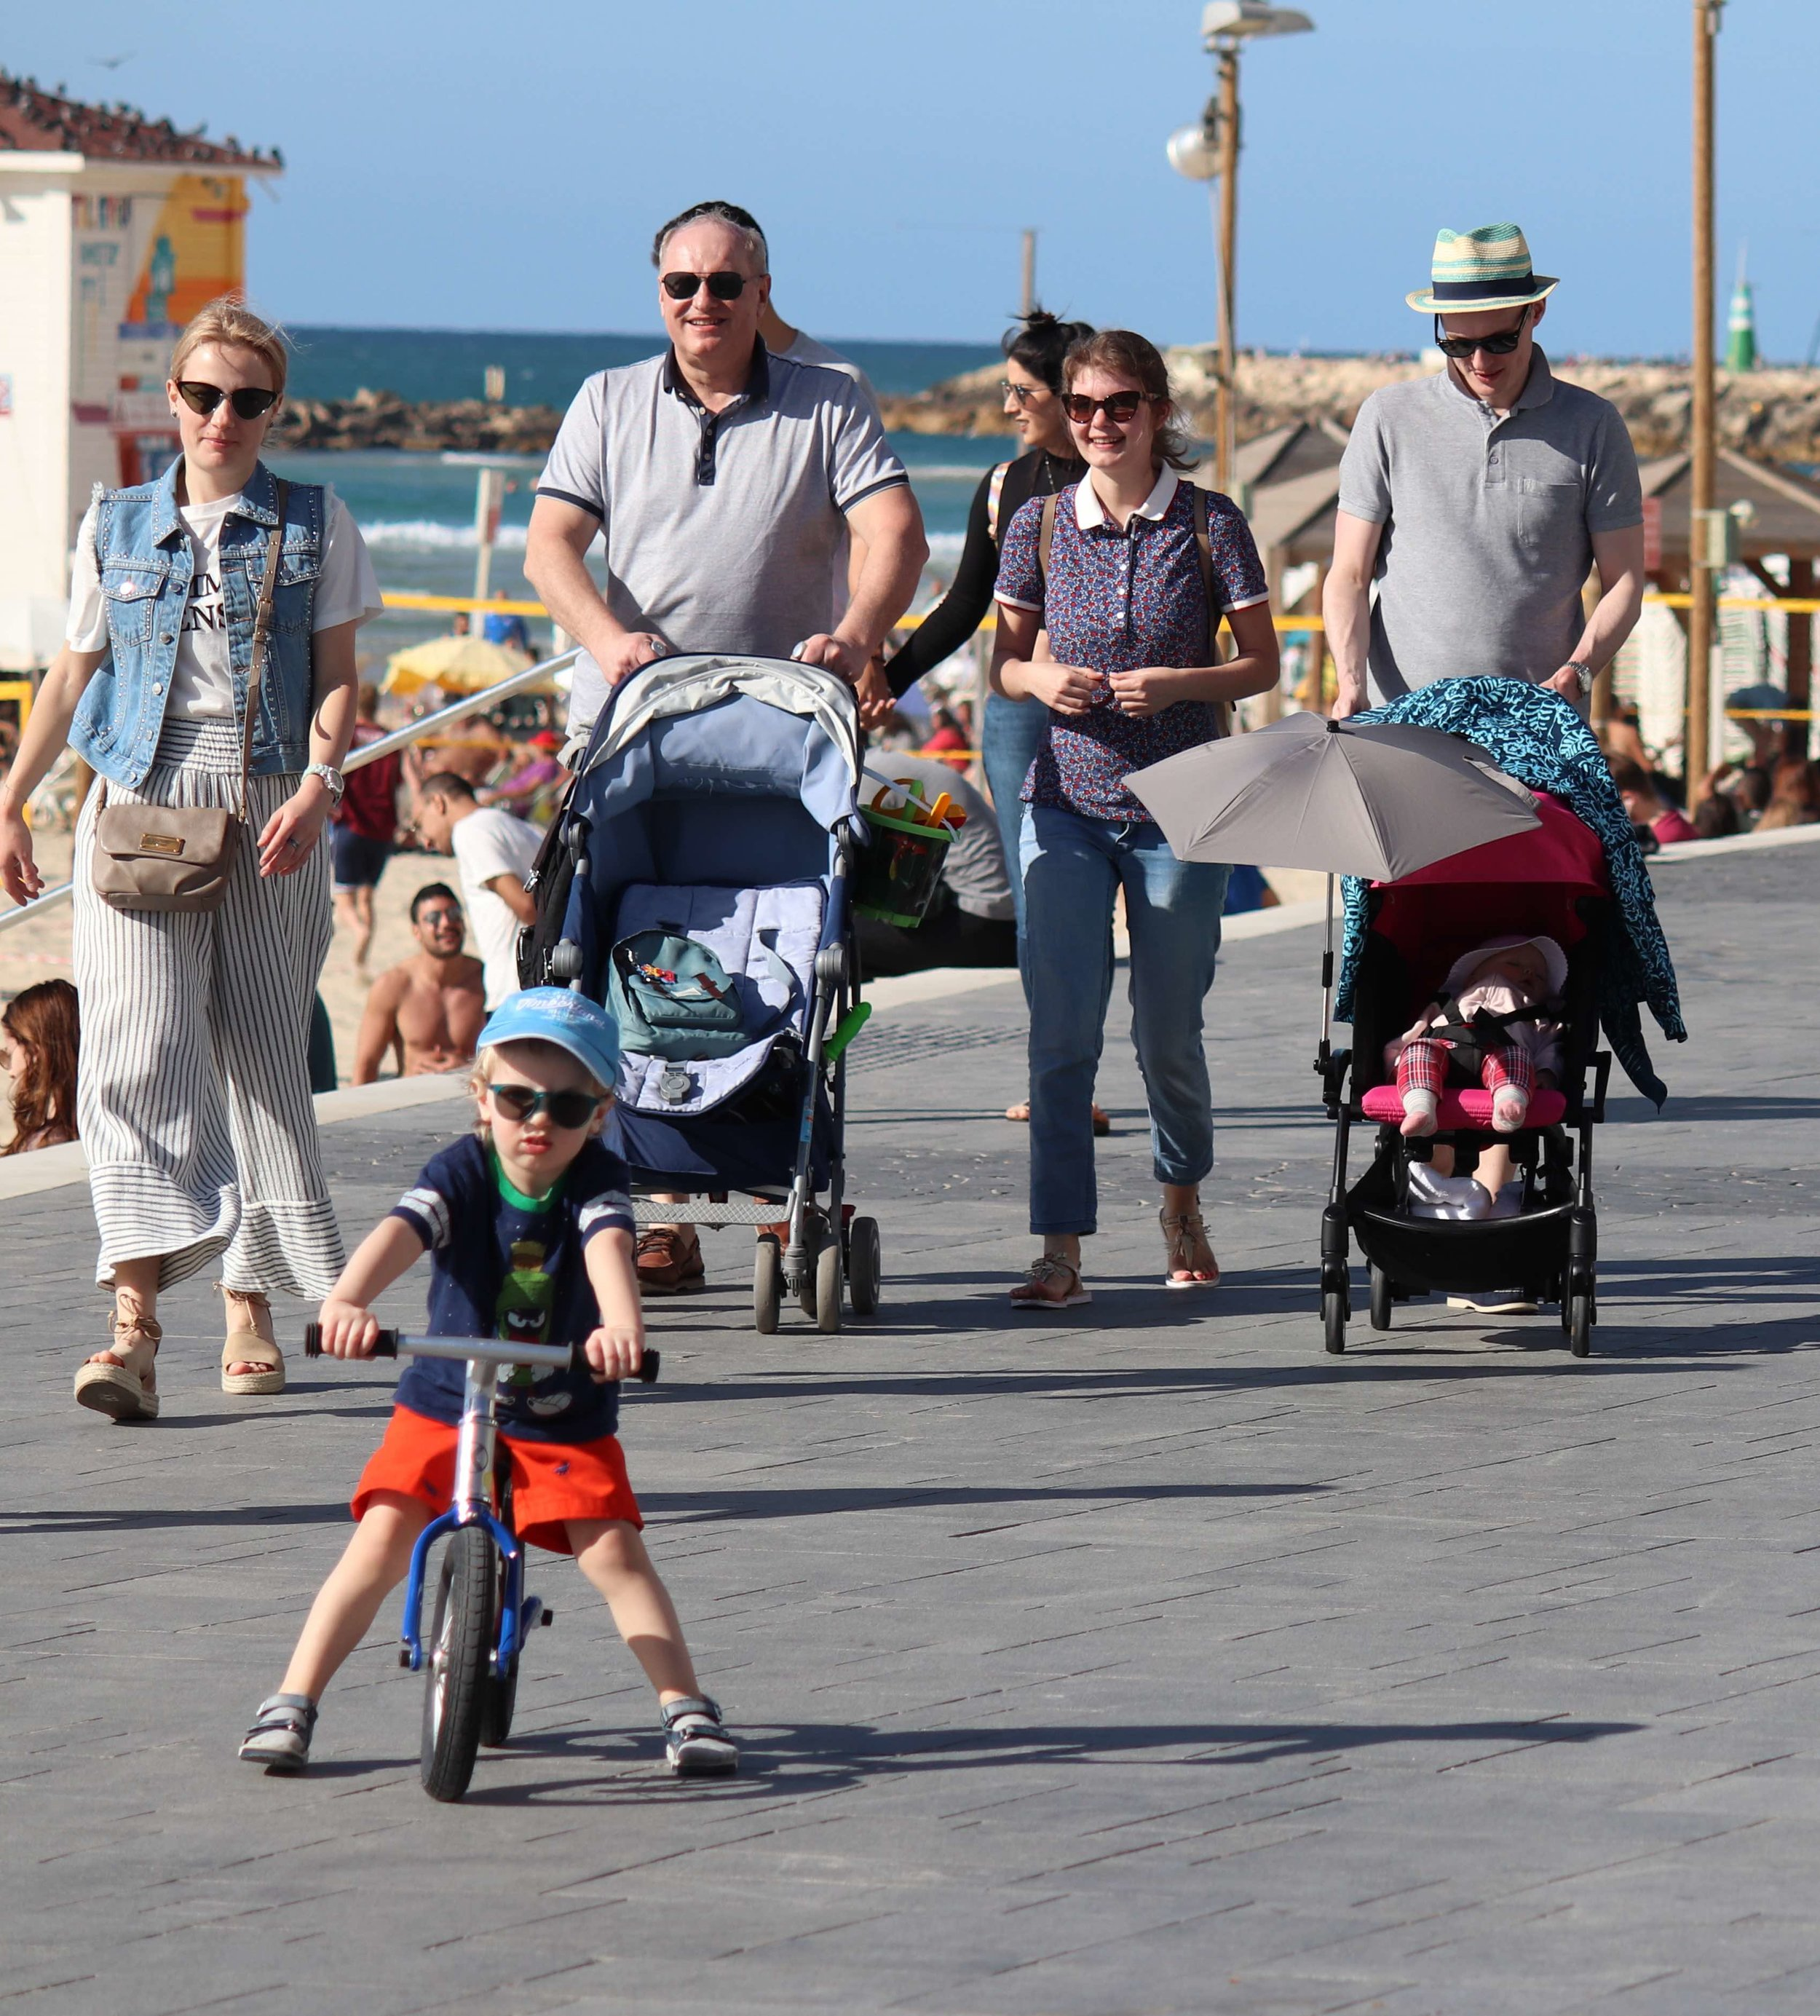 family with strollers and kid on bike lower quality.jpg